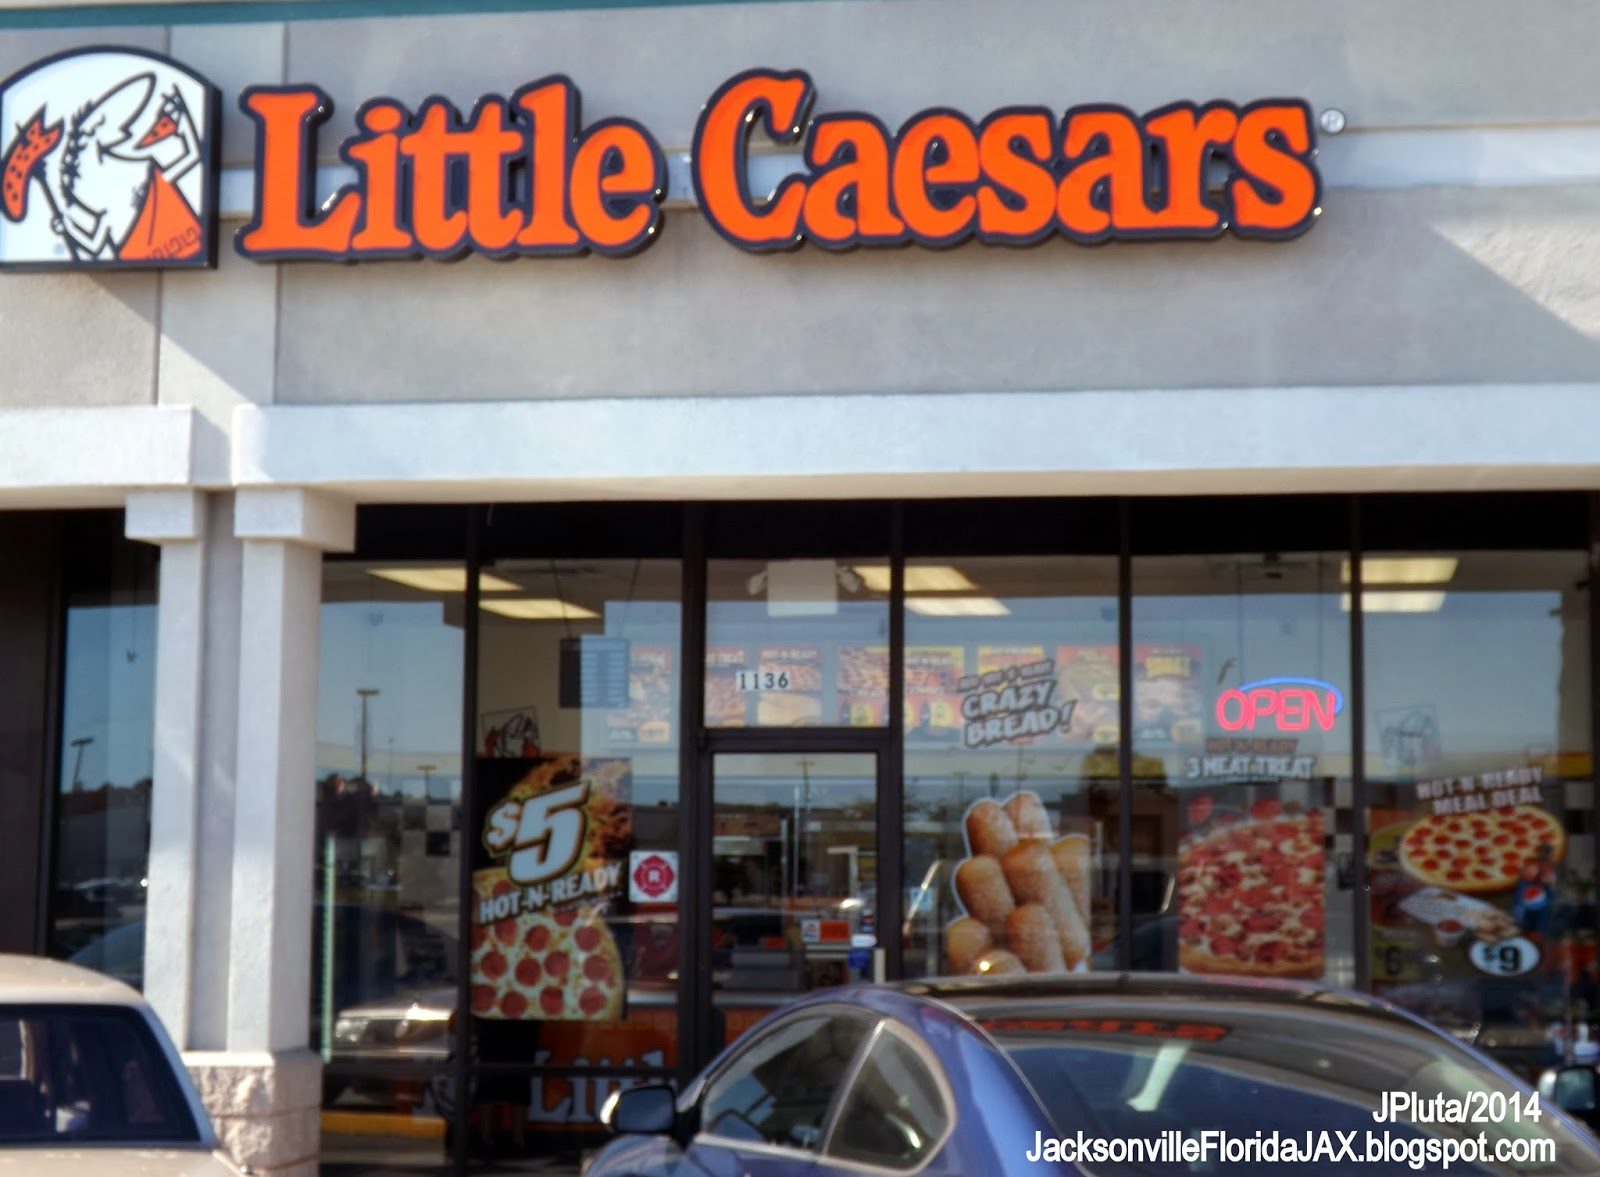 Little Caesars, Jacksonville. 18 likes. Little Caesars Pizza is the largest carry-out pizza chain internationally. Visit our website store locator for /5(3).